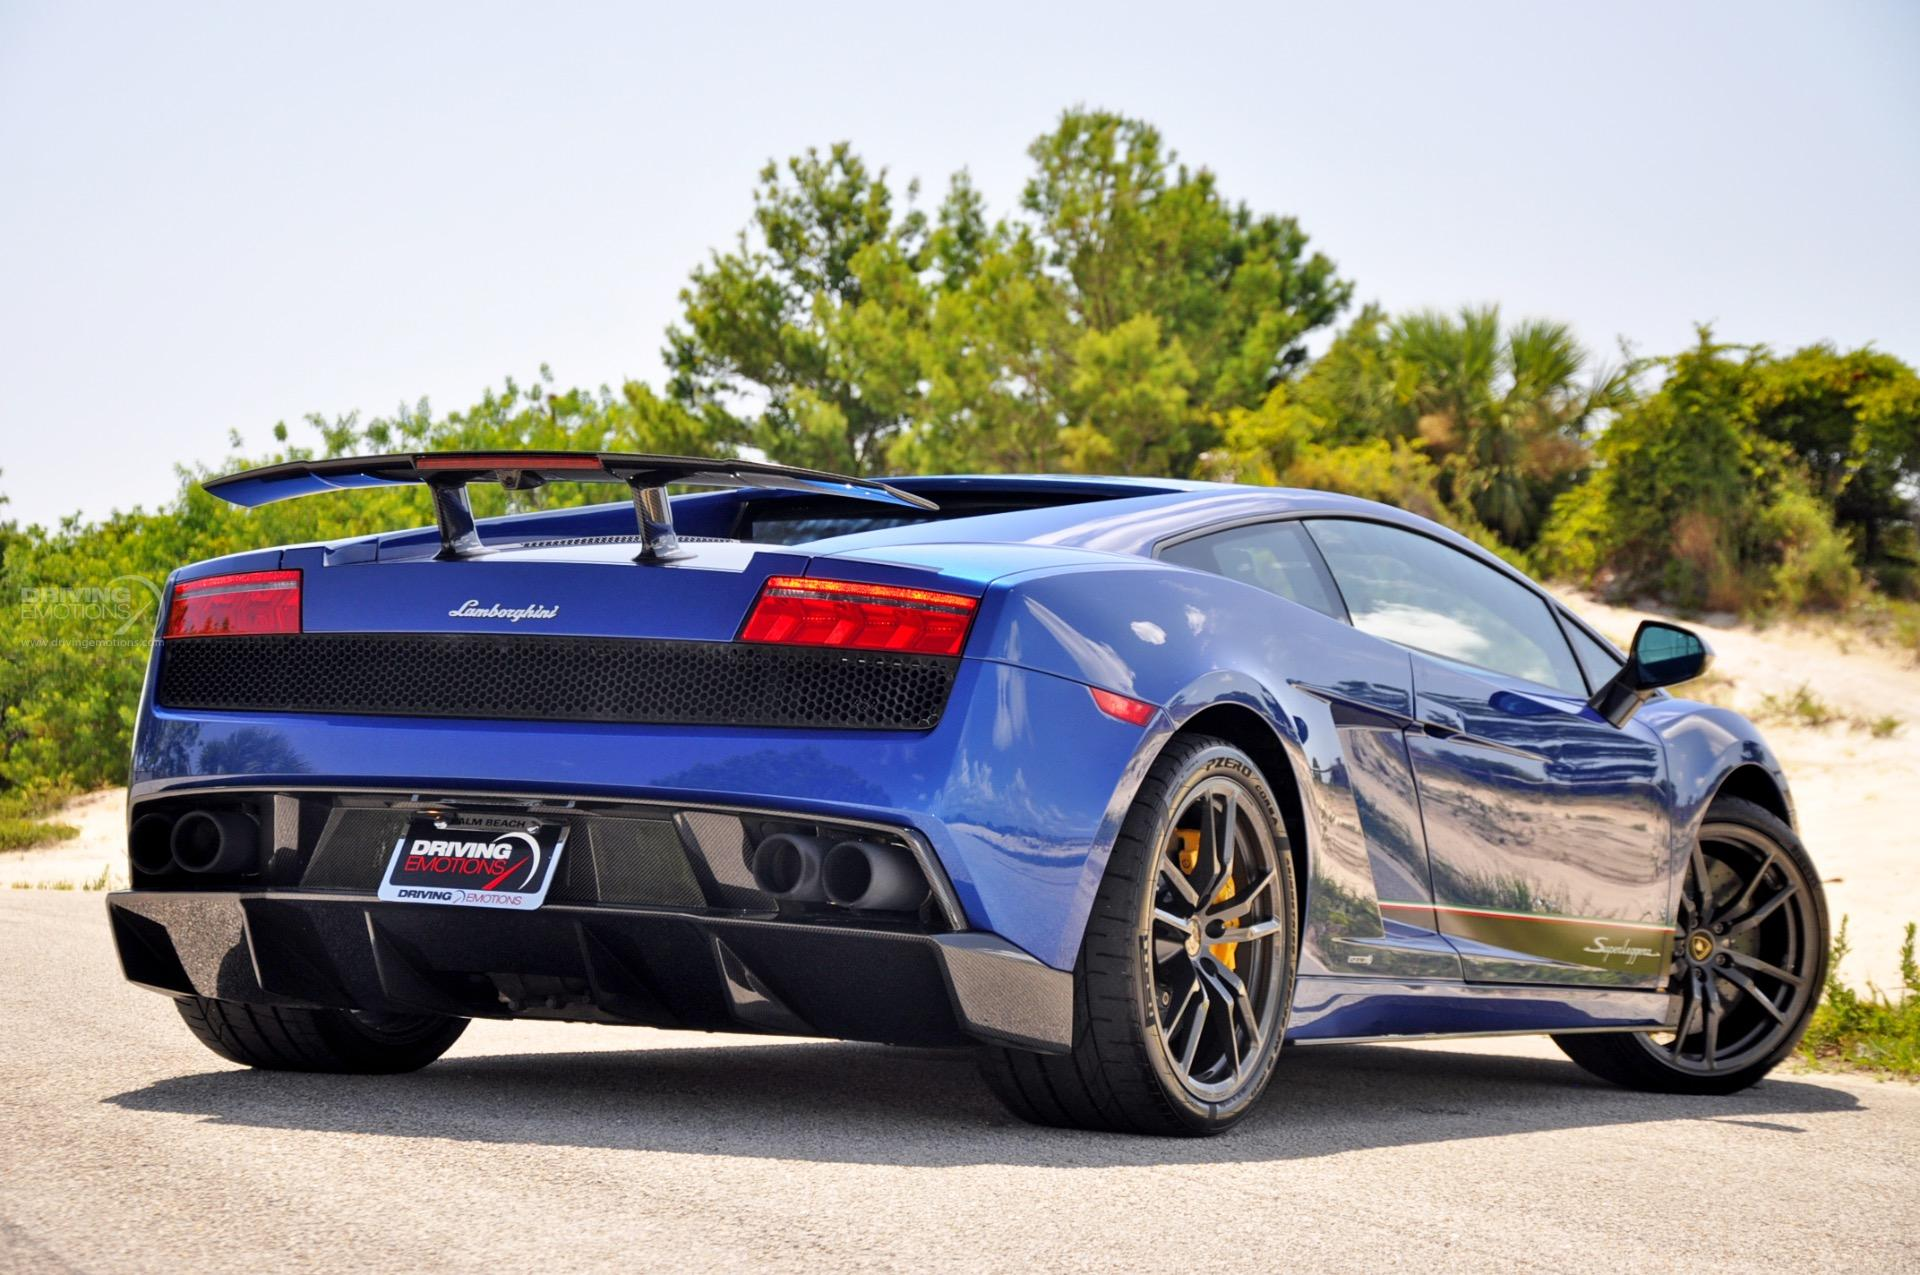 2013 Lamborghini Gallardo Lp570 4 Superleggera Lp 570 4